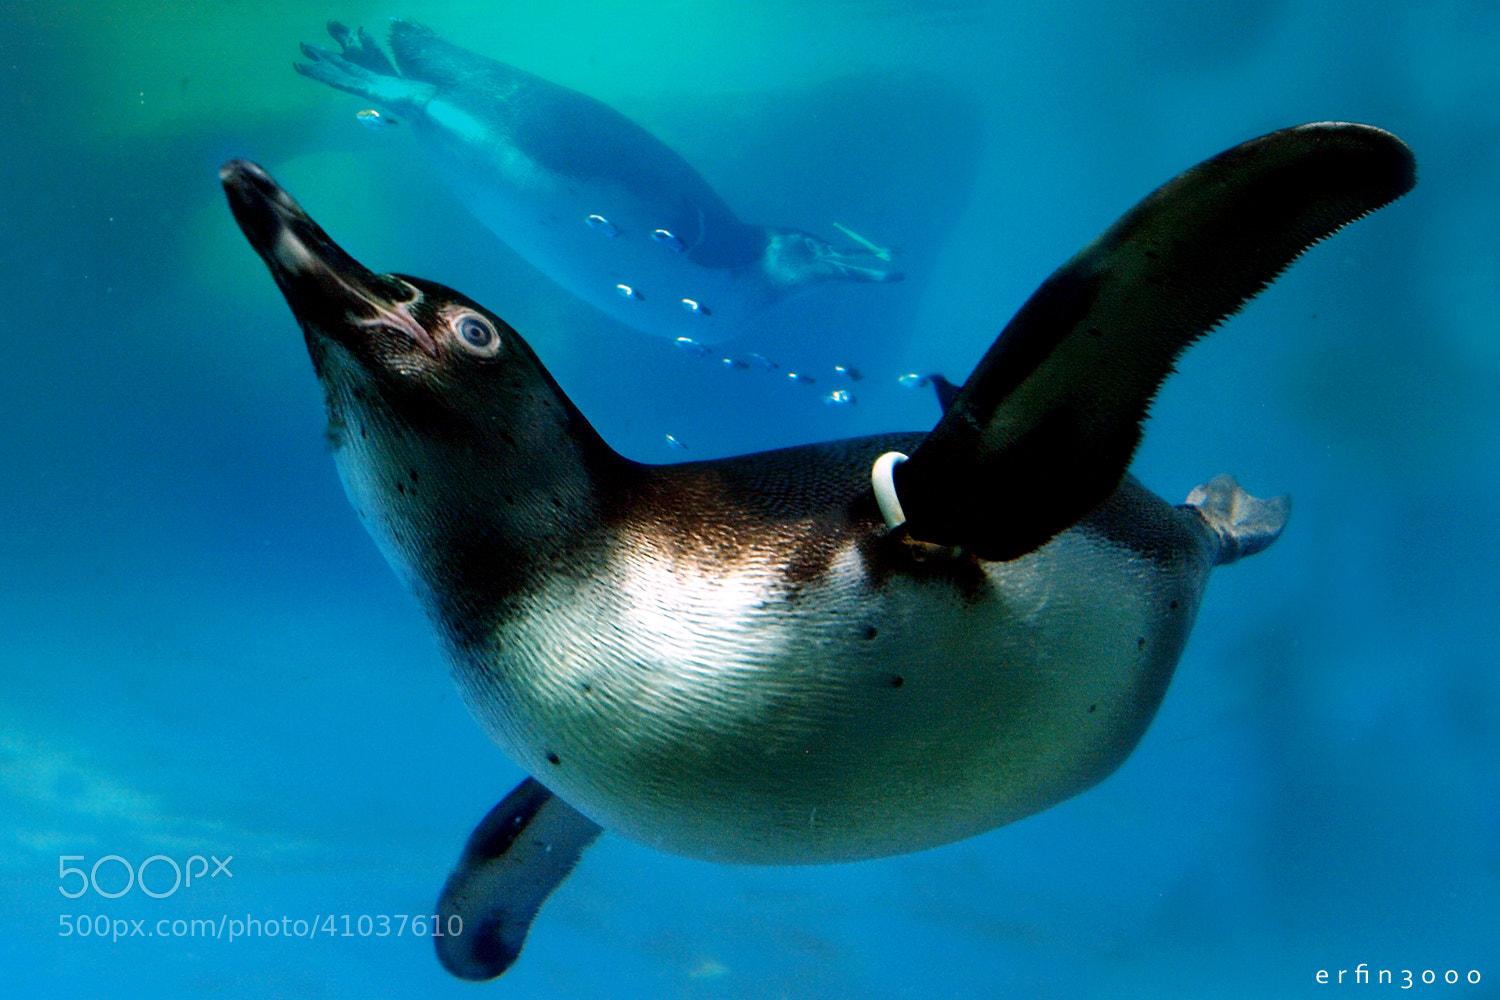 Photograph Humboldt Penguin by Erfin Nugroho A.K.A erfin3000 on 500px